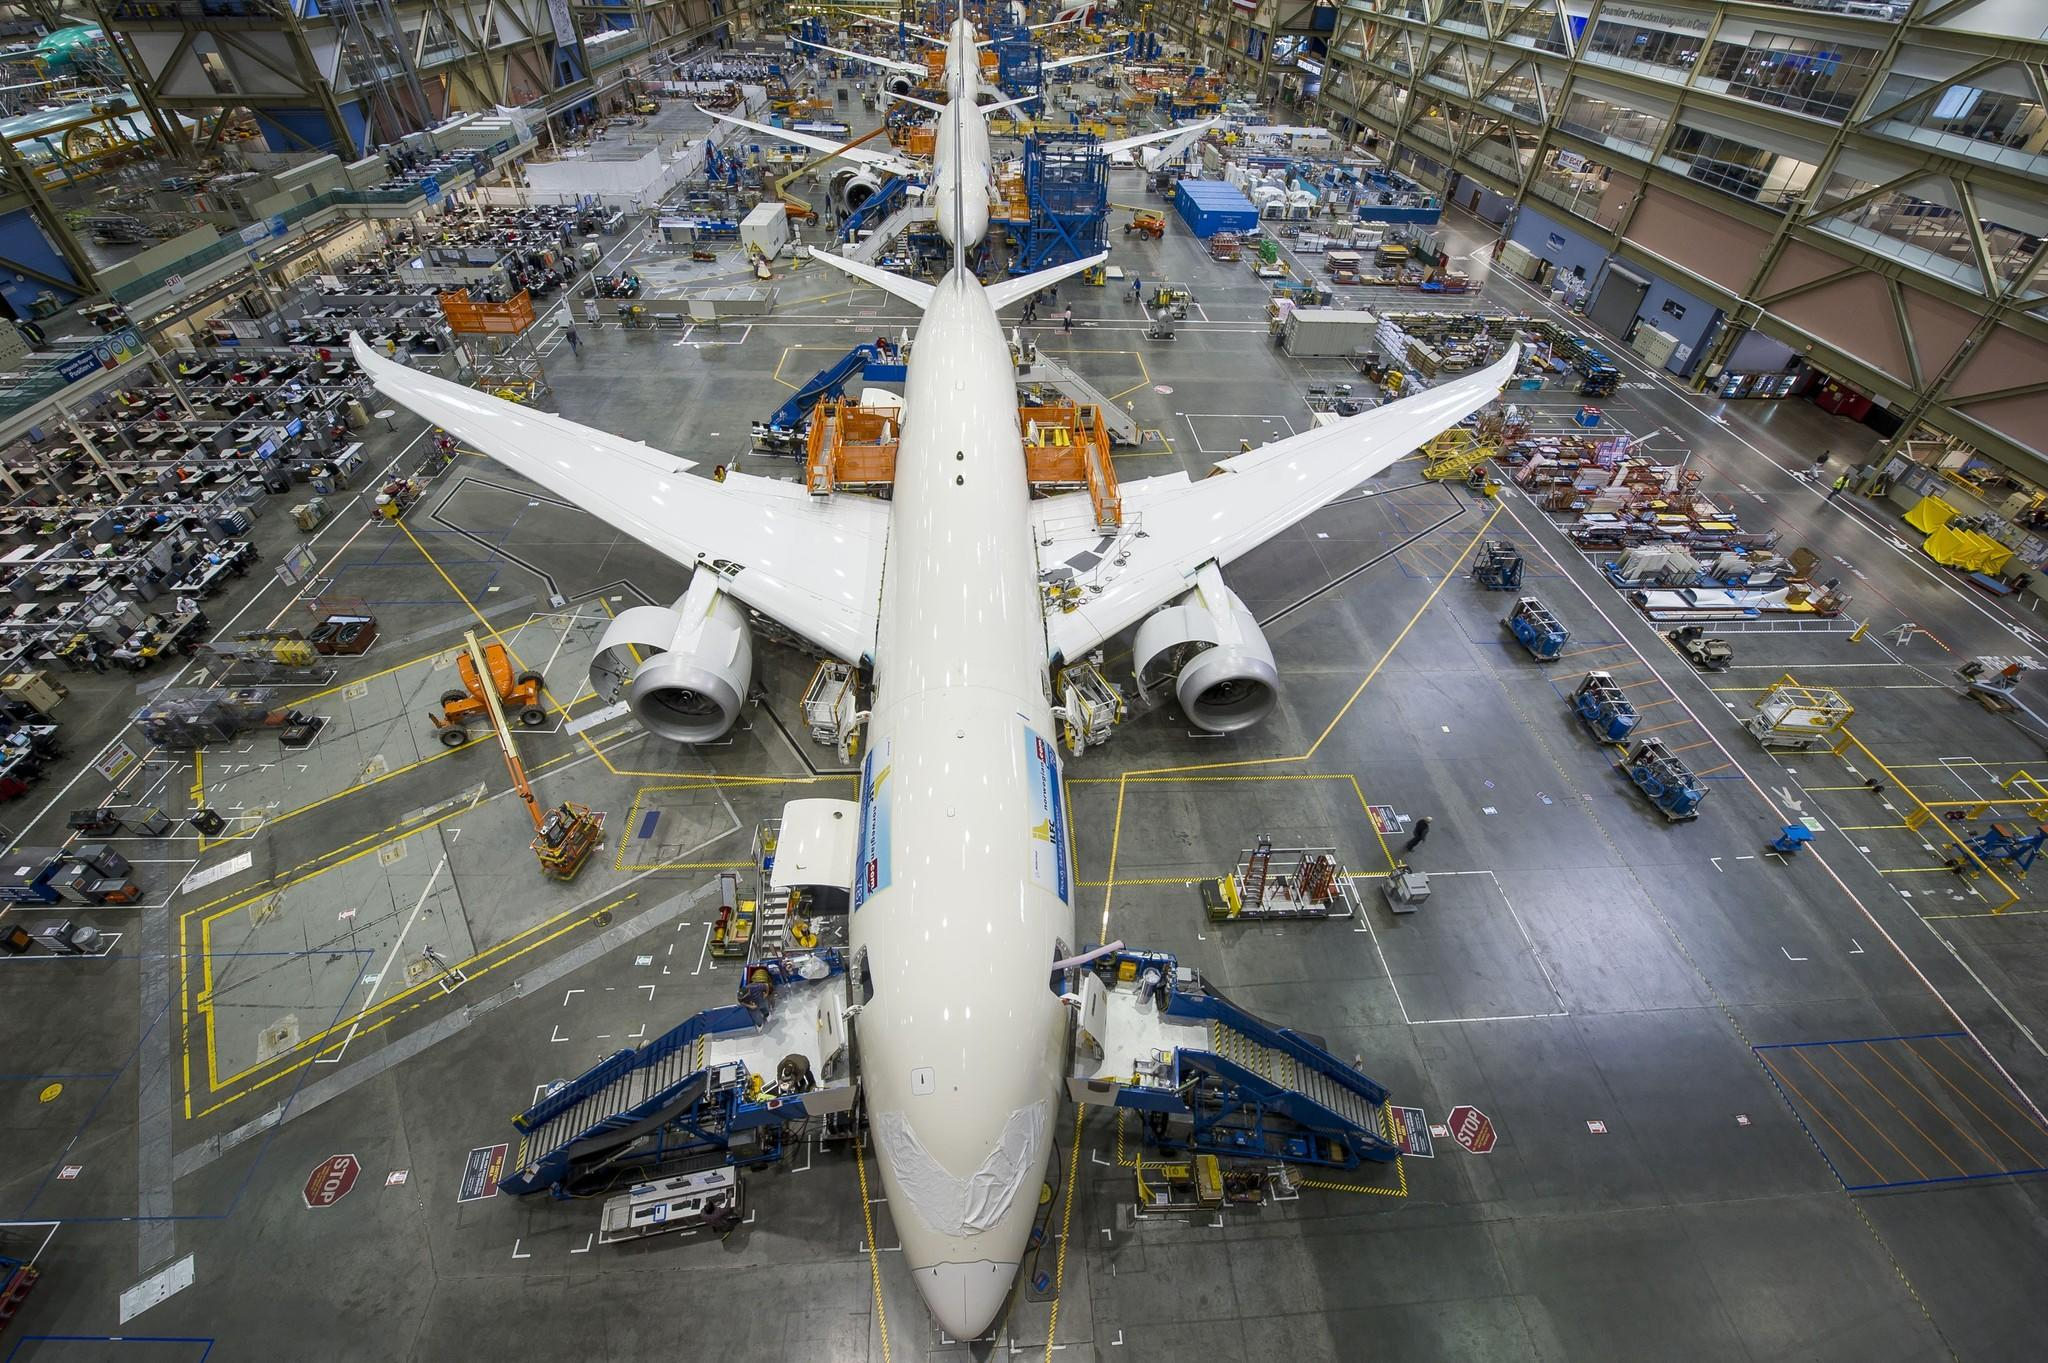 Boeing's profits are up this quarter as the Chicago-based aerospace company increases commercial jetliner production.